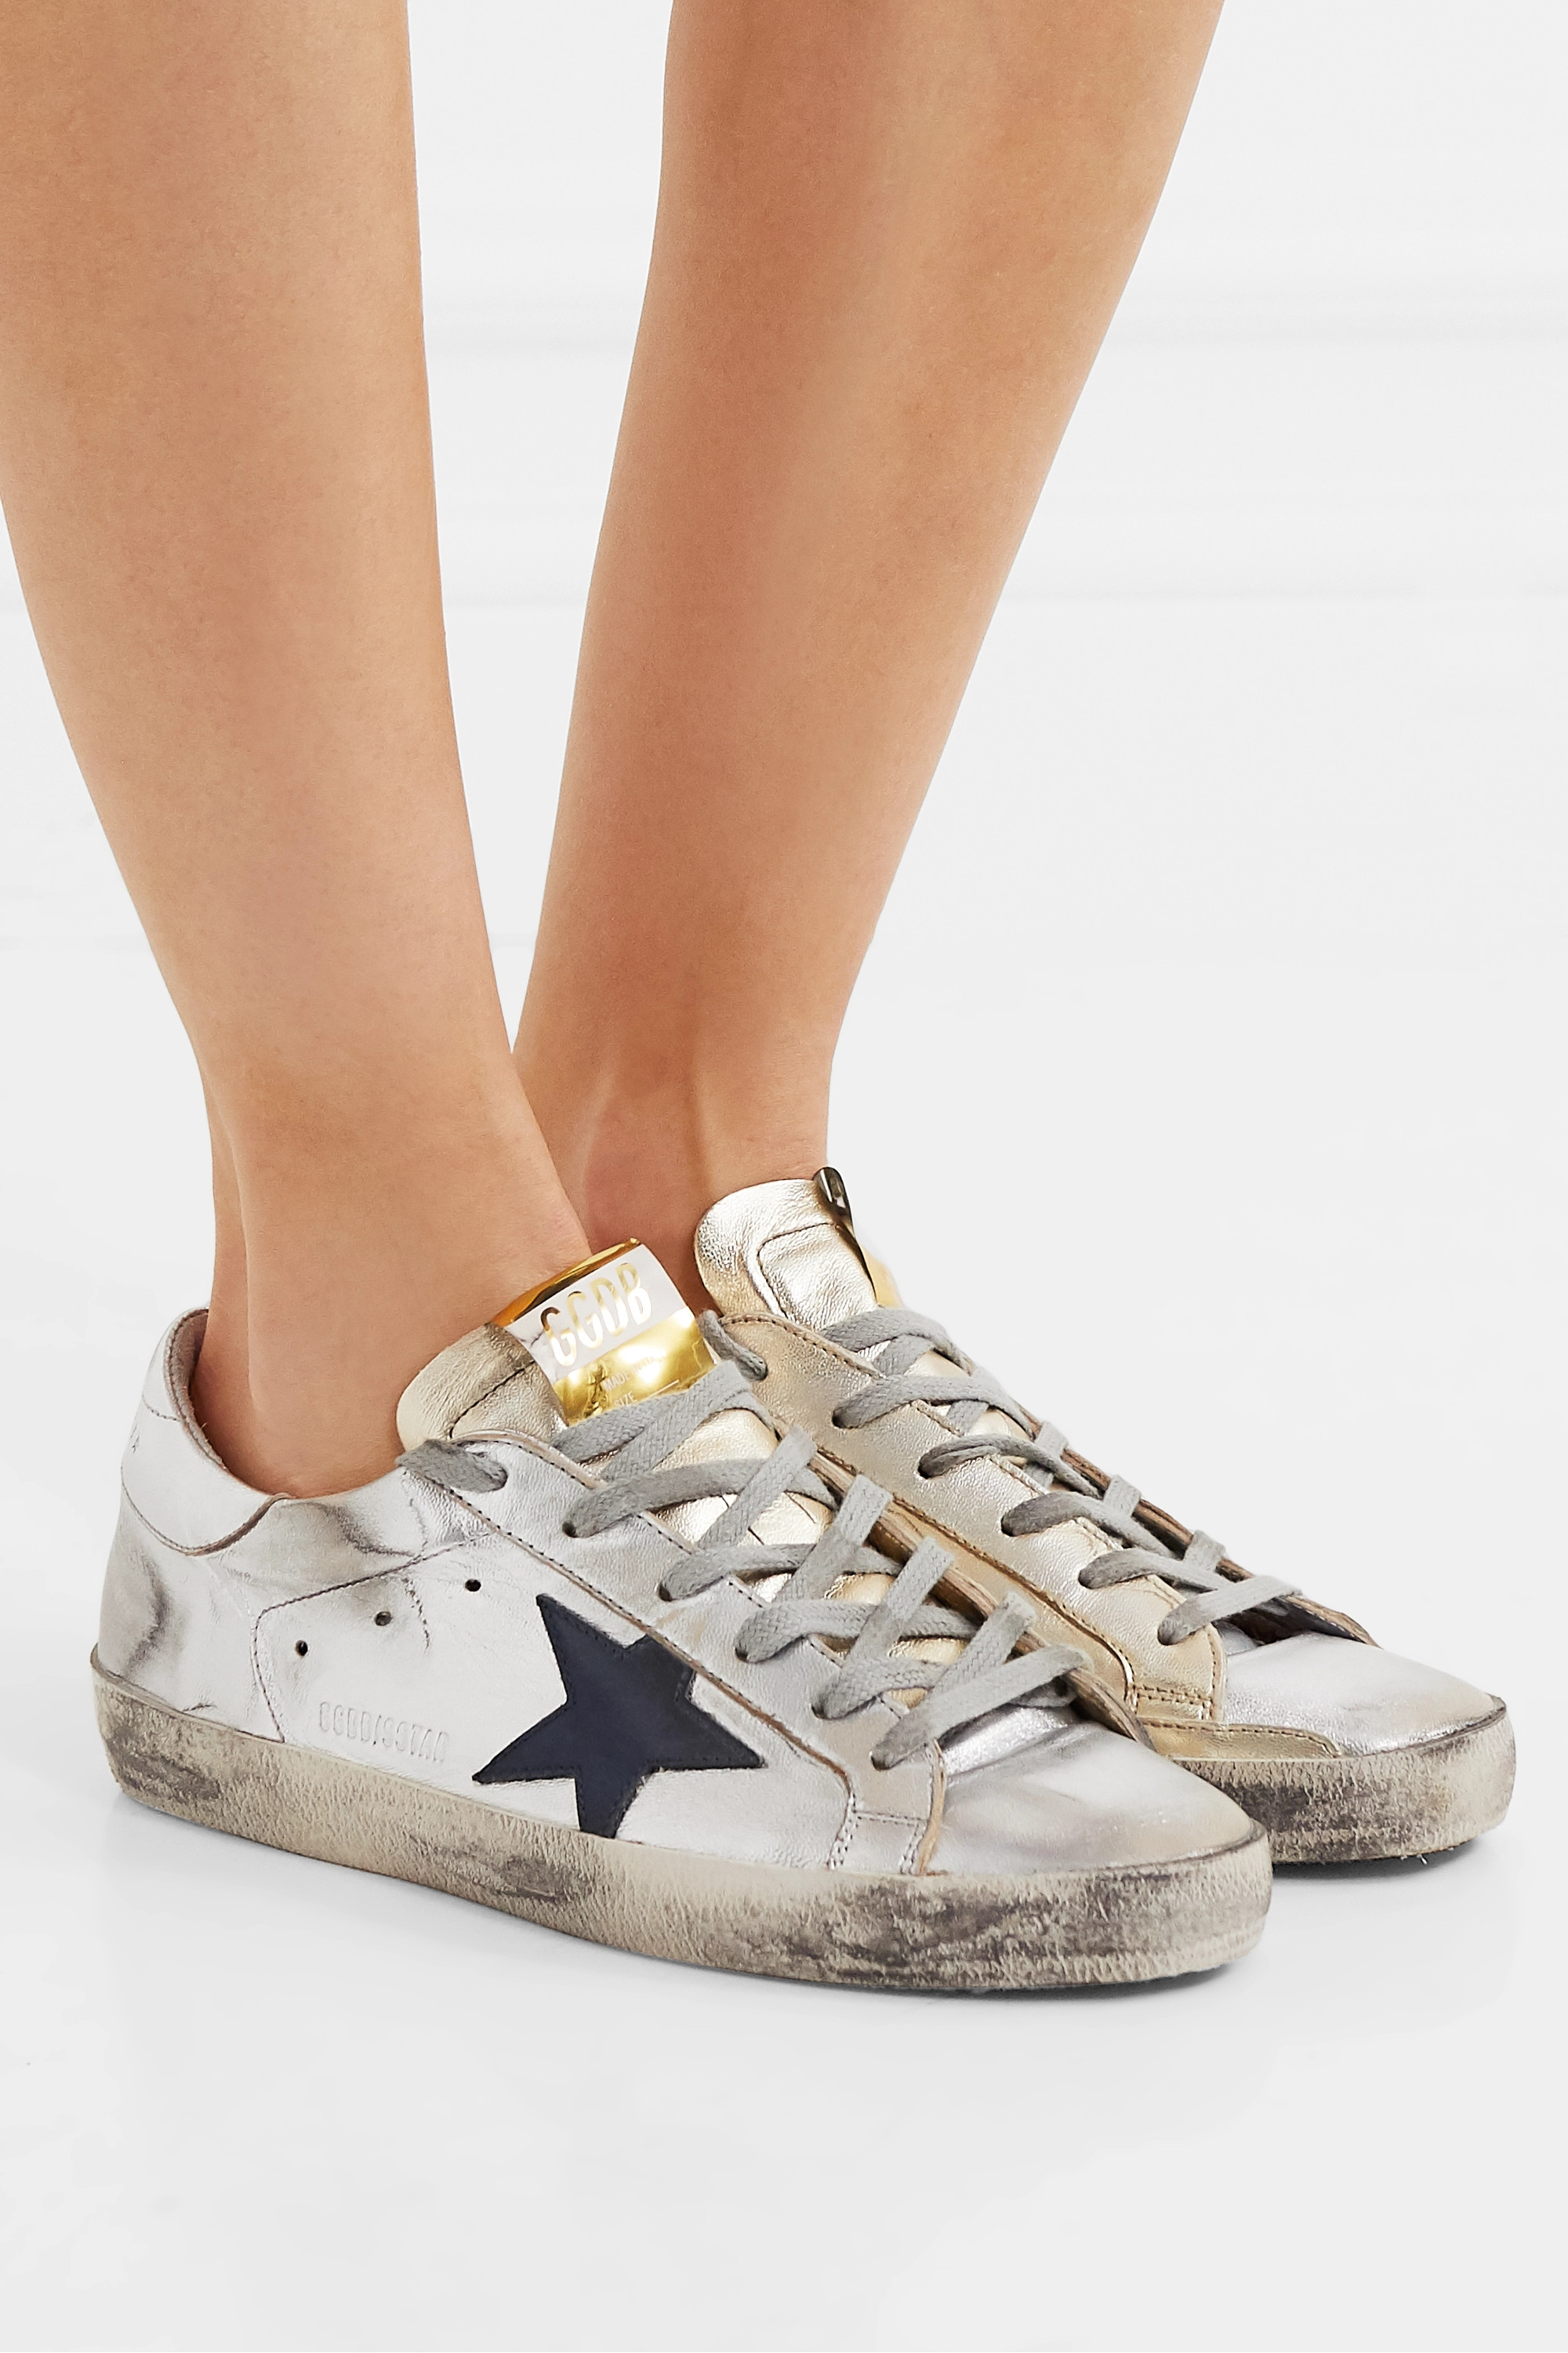 Golden Goose Superstar two-tone distressed metallic leather sneakers